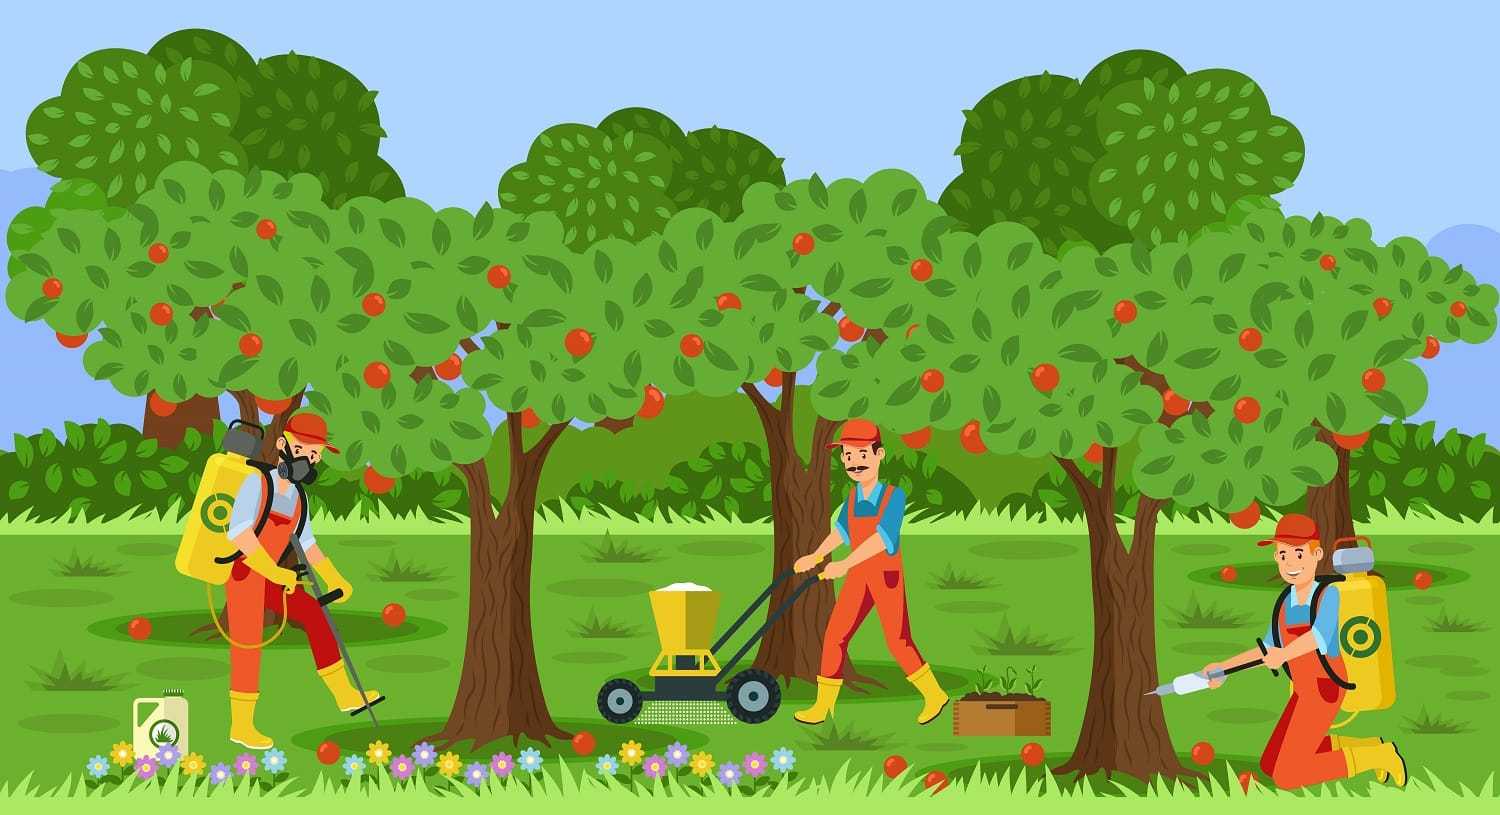 Farmers Working in Apple Garden Flat Illustration. Tree Injection Vector Drawing. Man with Fertilizer Spreading Machine. Canister with Herbicide. Fruit Harvest. Cartoon Character in Face Mask